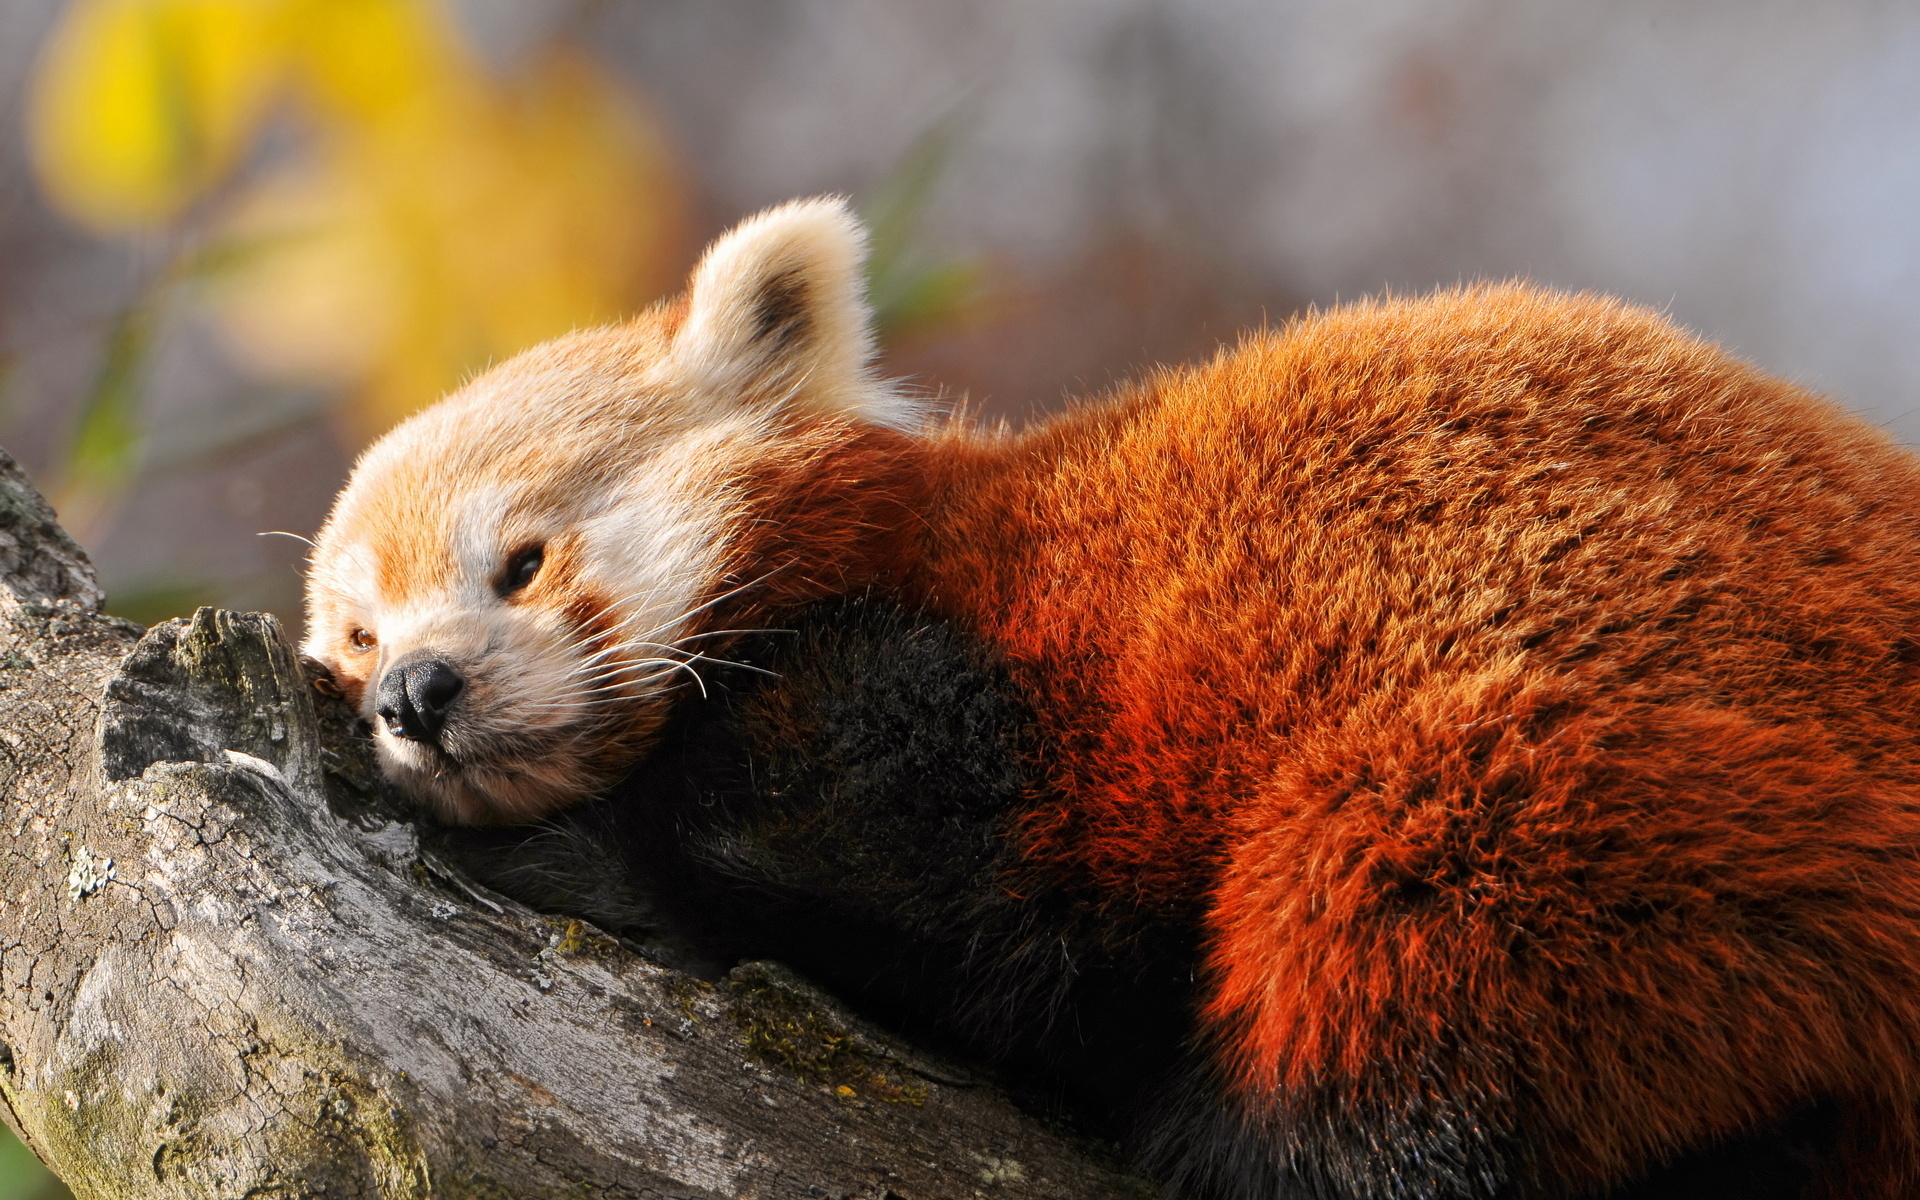 Cute Newborn Baby Hd Wallpapers Red Panda Full Hd Wallpaper And Background 1920x1200